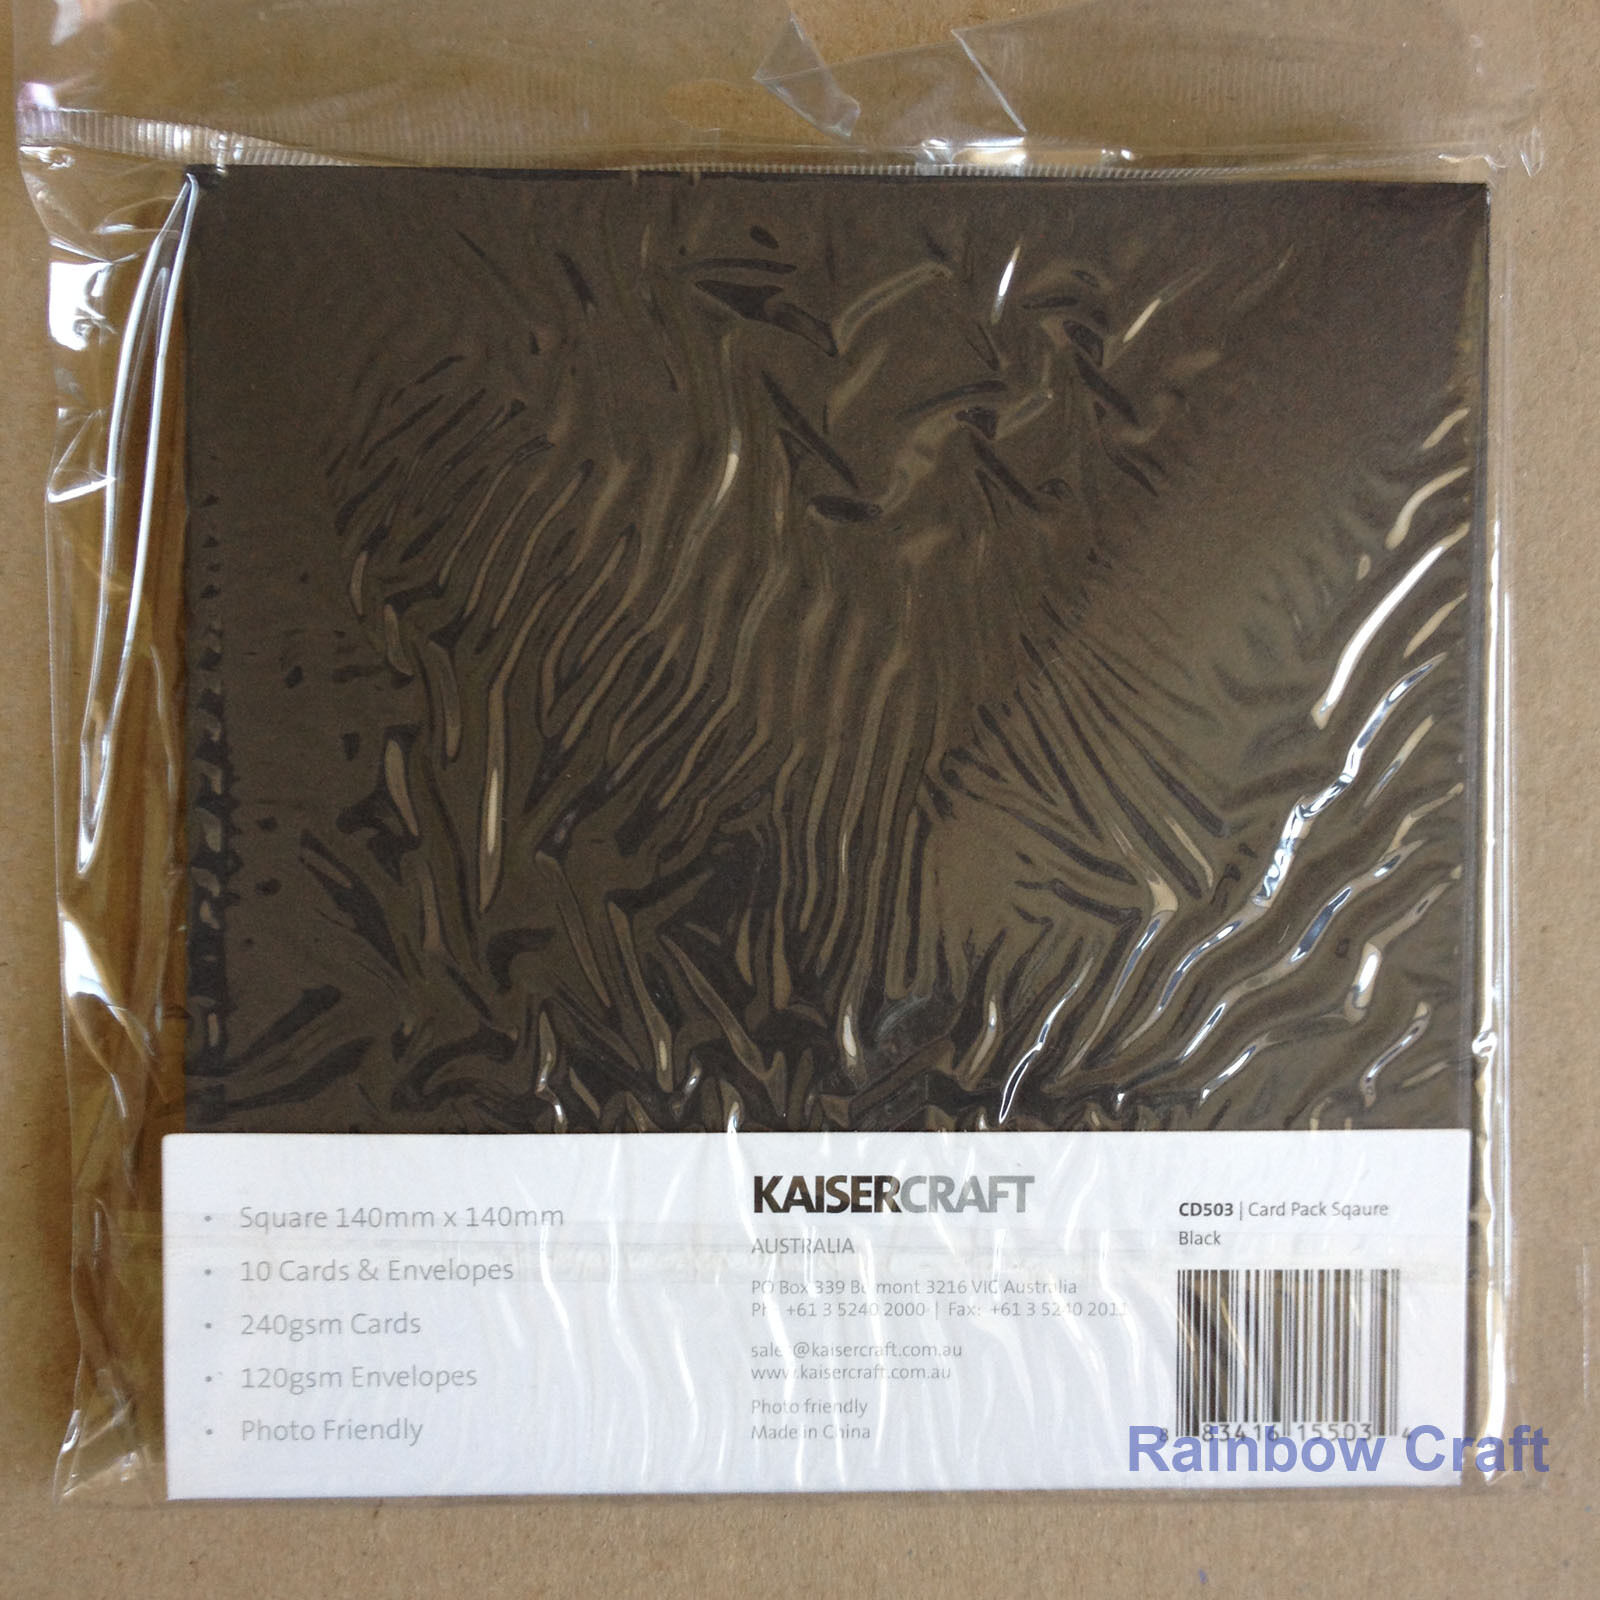 Kaisercraft 10 blank Cards & Envelopes Square / C6 size (12 selections) - Black